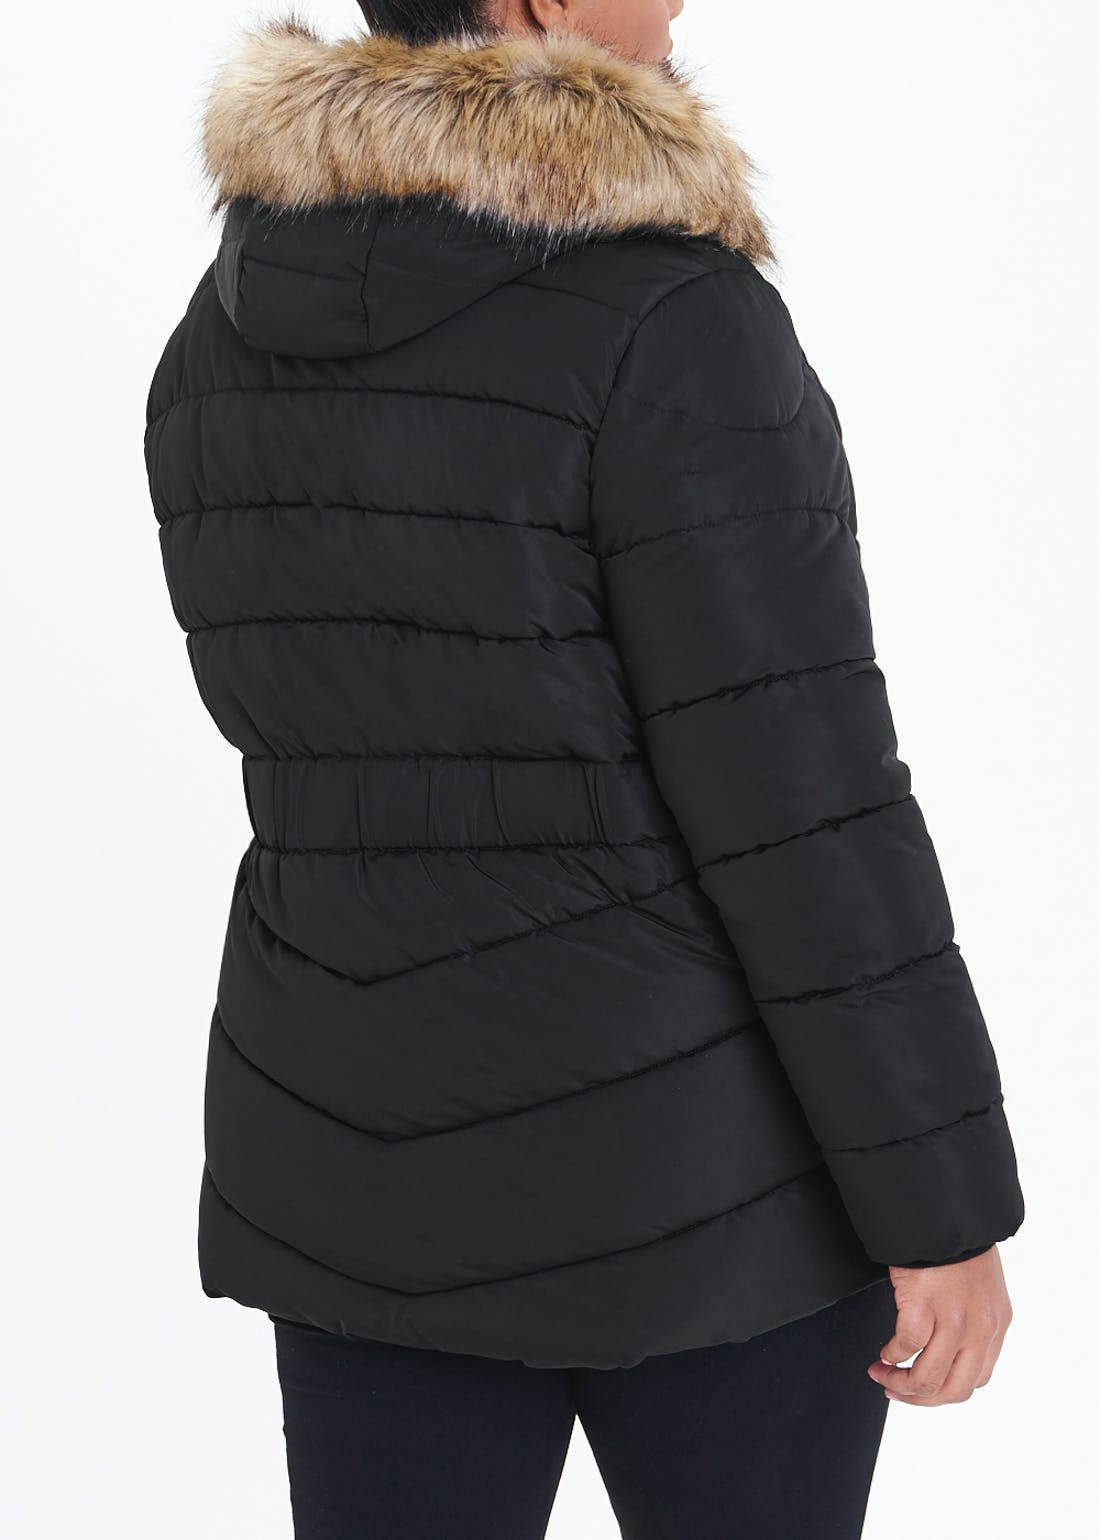 Papaya Curve Black Faux Fur Hood Padded Jacket